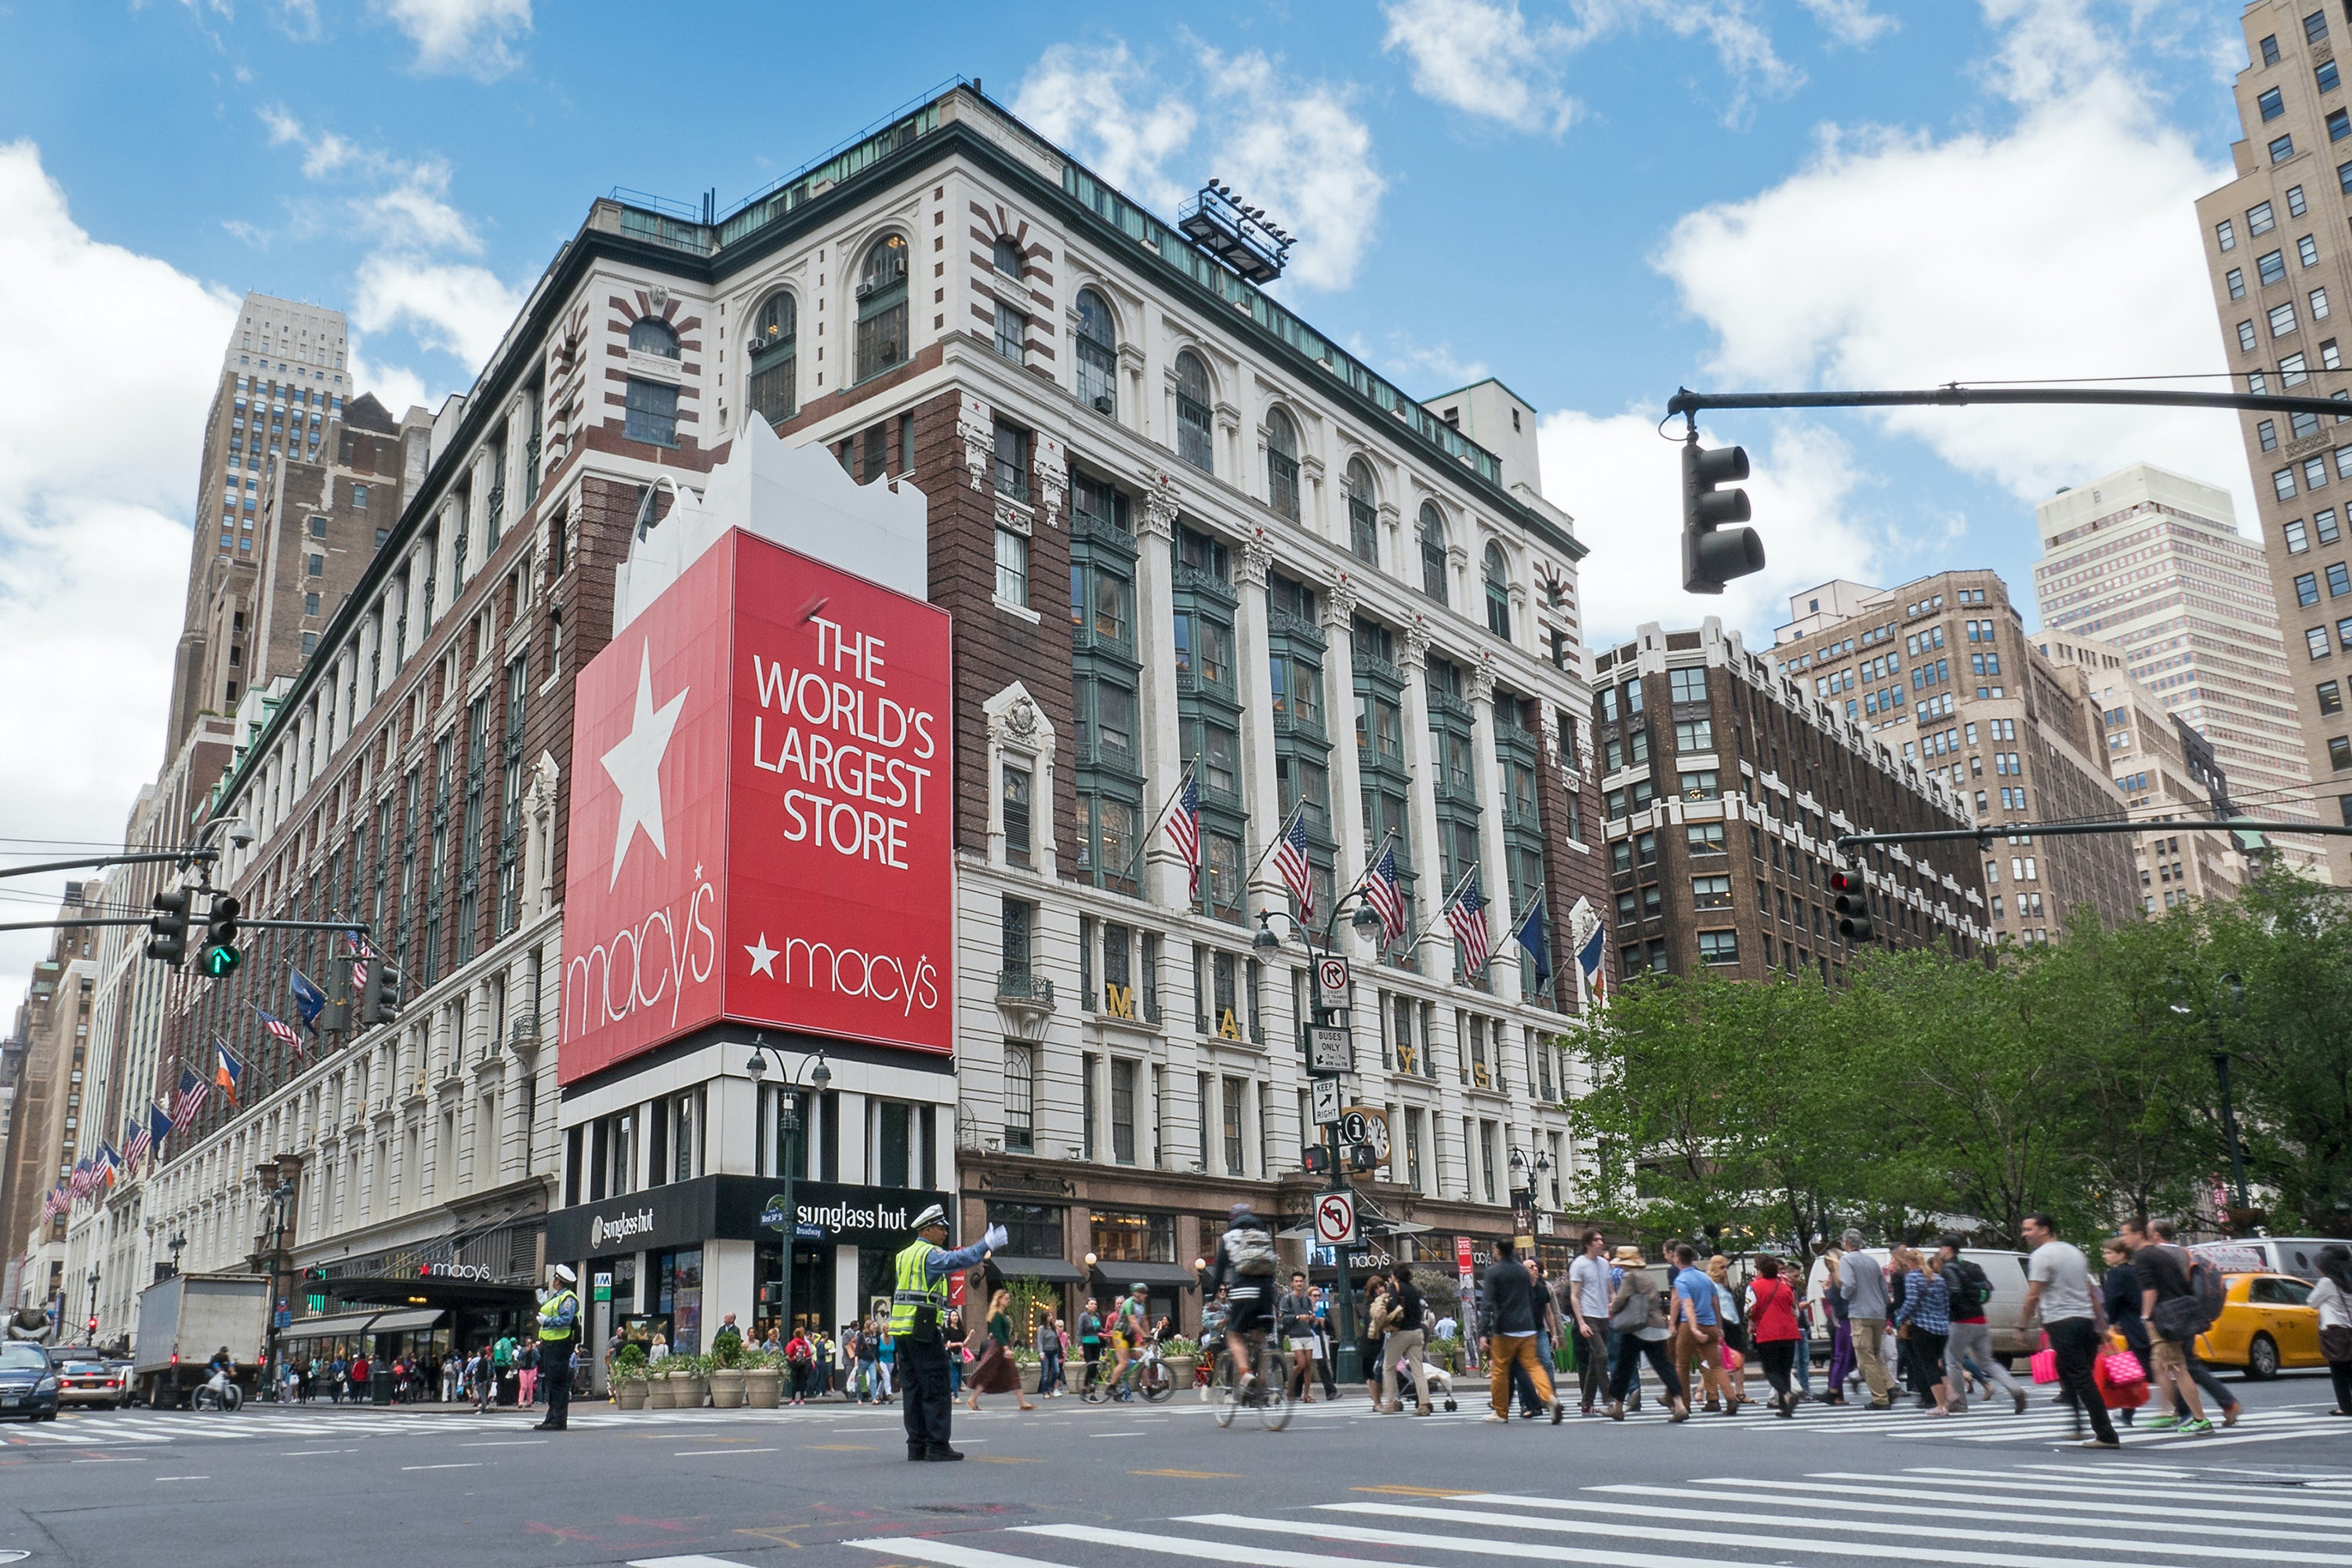 Macy's flagship store in Herald Square, New York | Source: Shutterstock